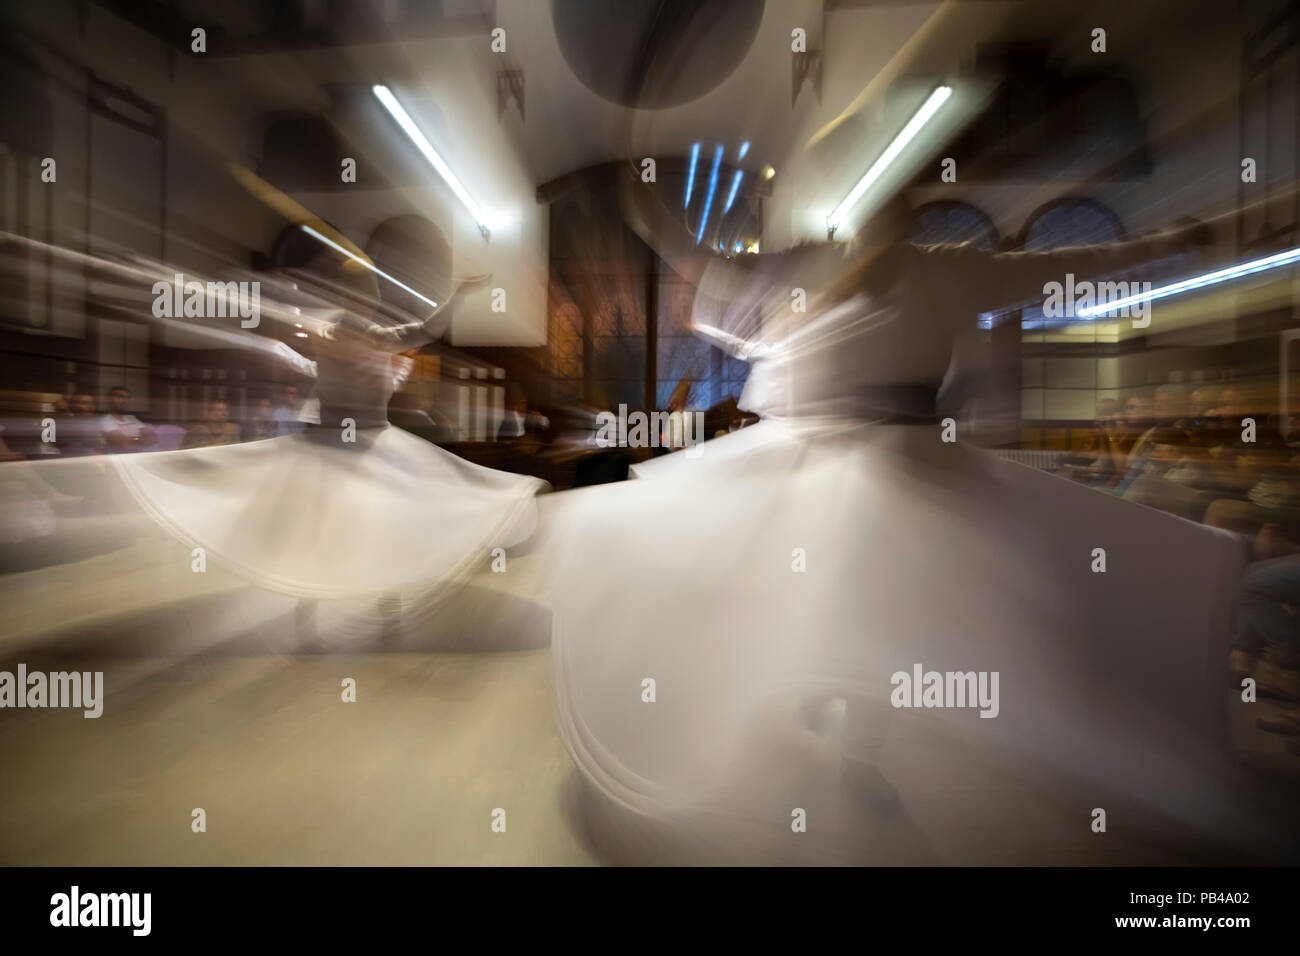 Dancers, whirling dervishes ceremony, Sirkeci Train Station, Istanbul, Turkey - Stock Image